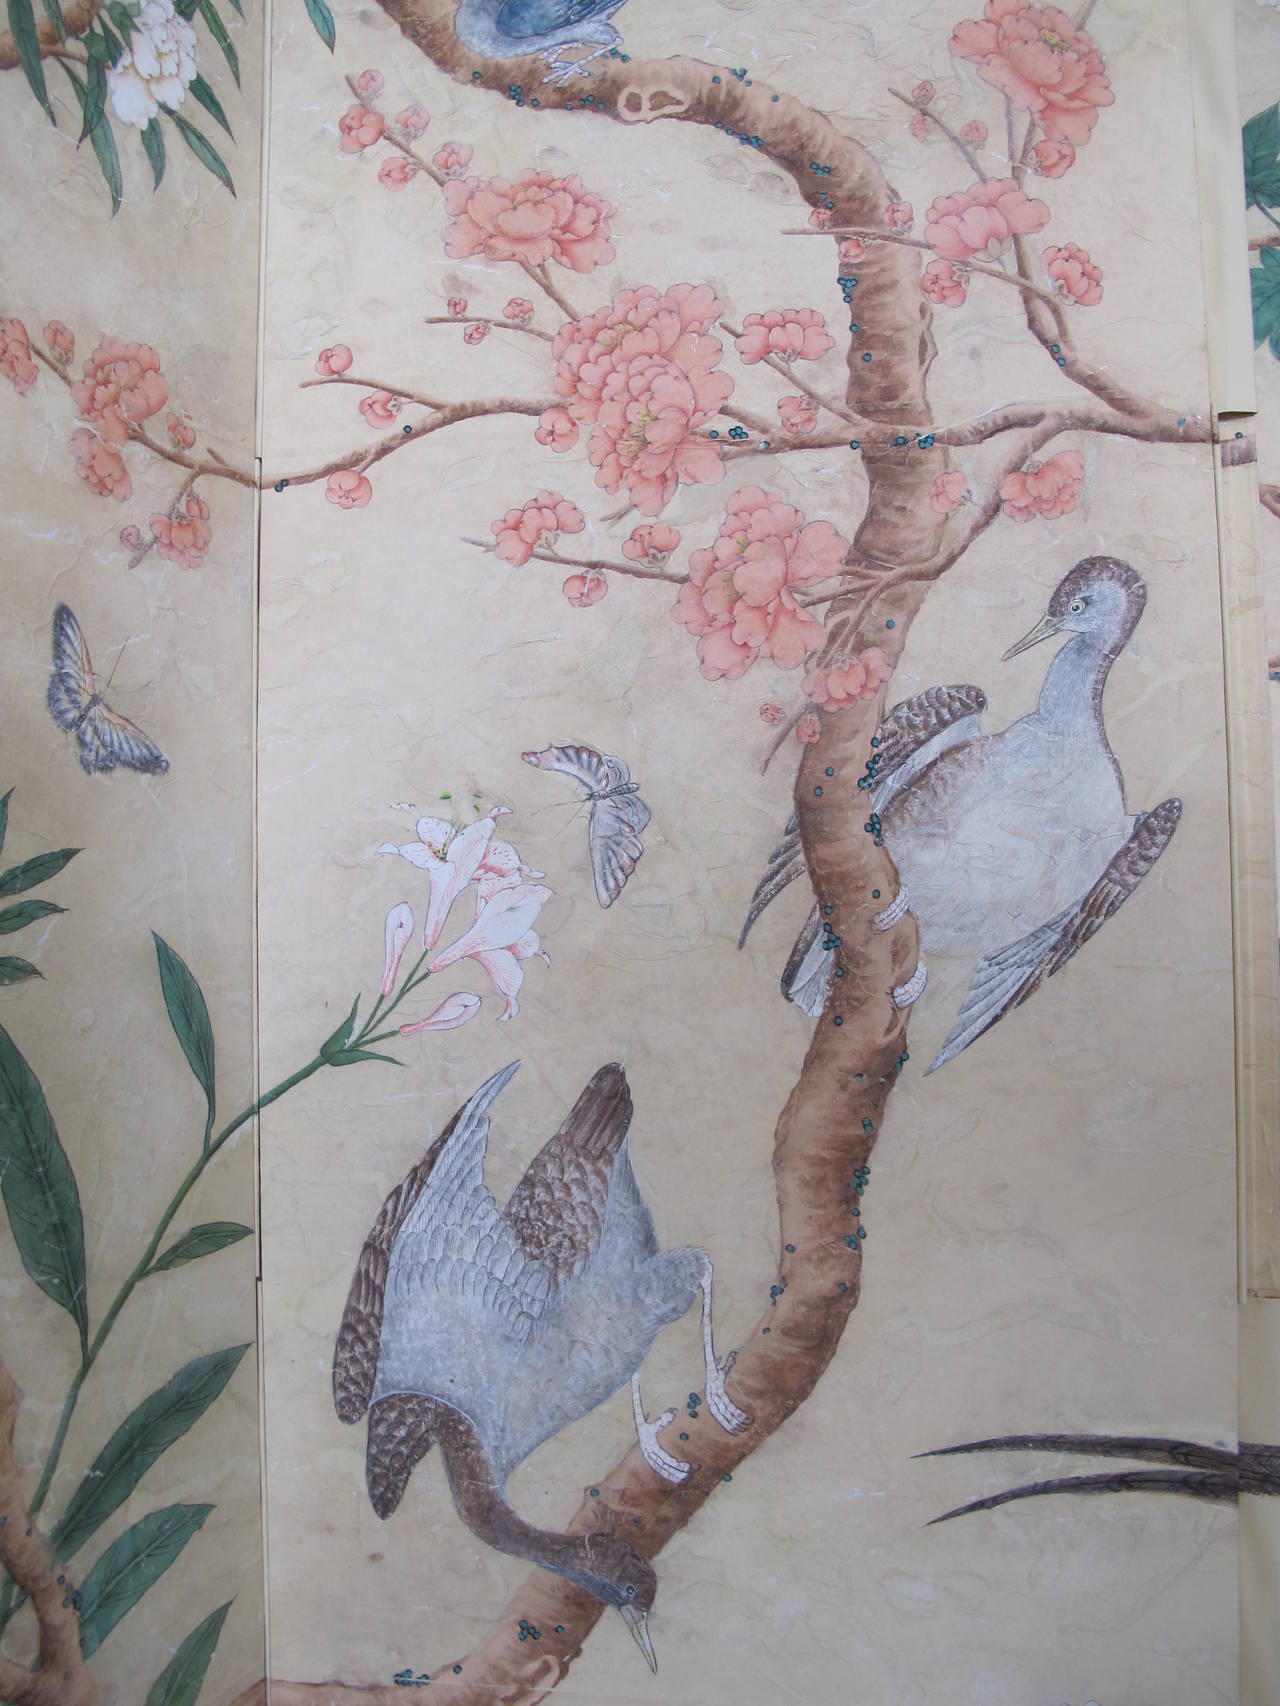 A four-panel screen with hand-painted 18th century style wallpaper applied on each panel. The design features brightly colored flowering trees, birds and butterflies. The screen has been intentionally antiqued to create the patina of an antique